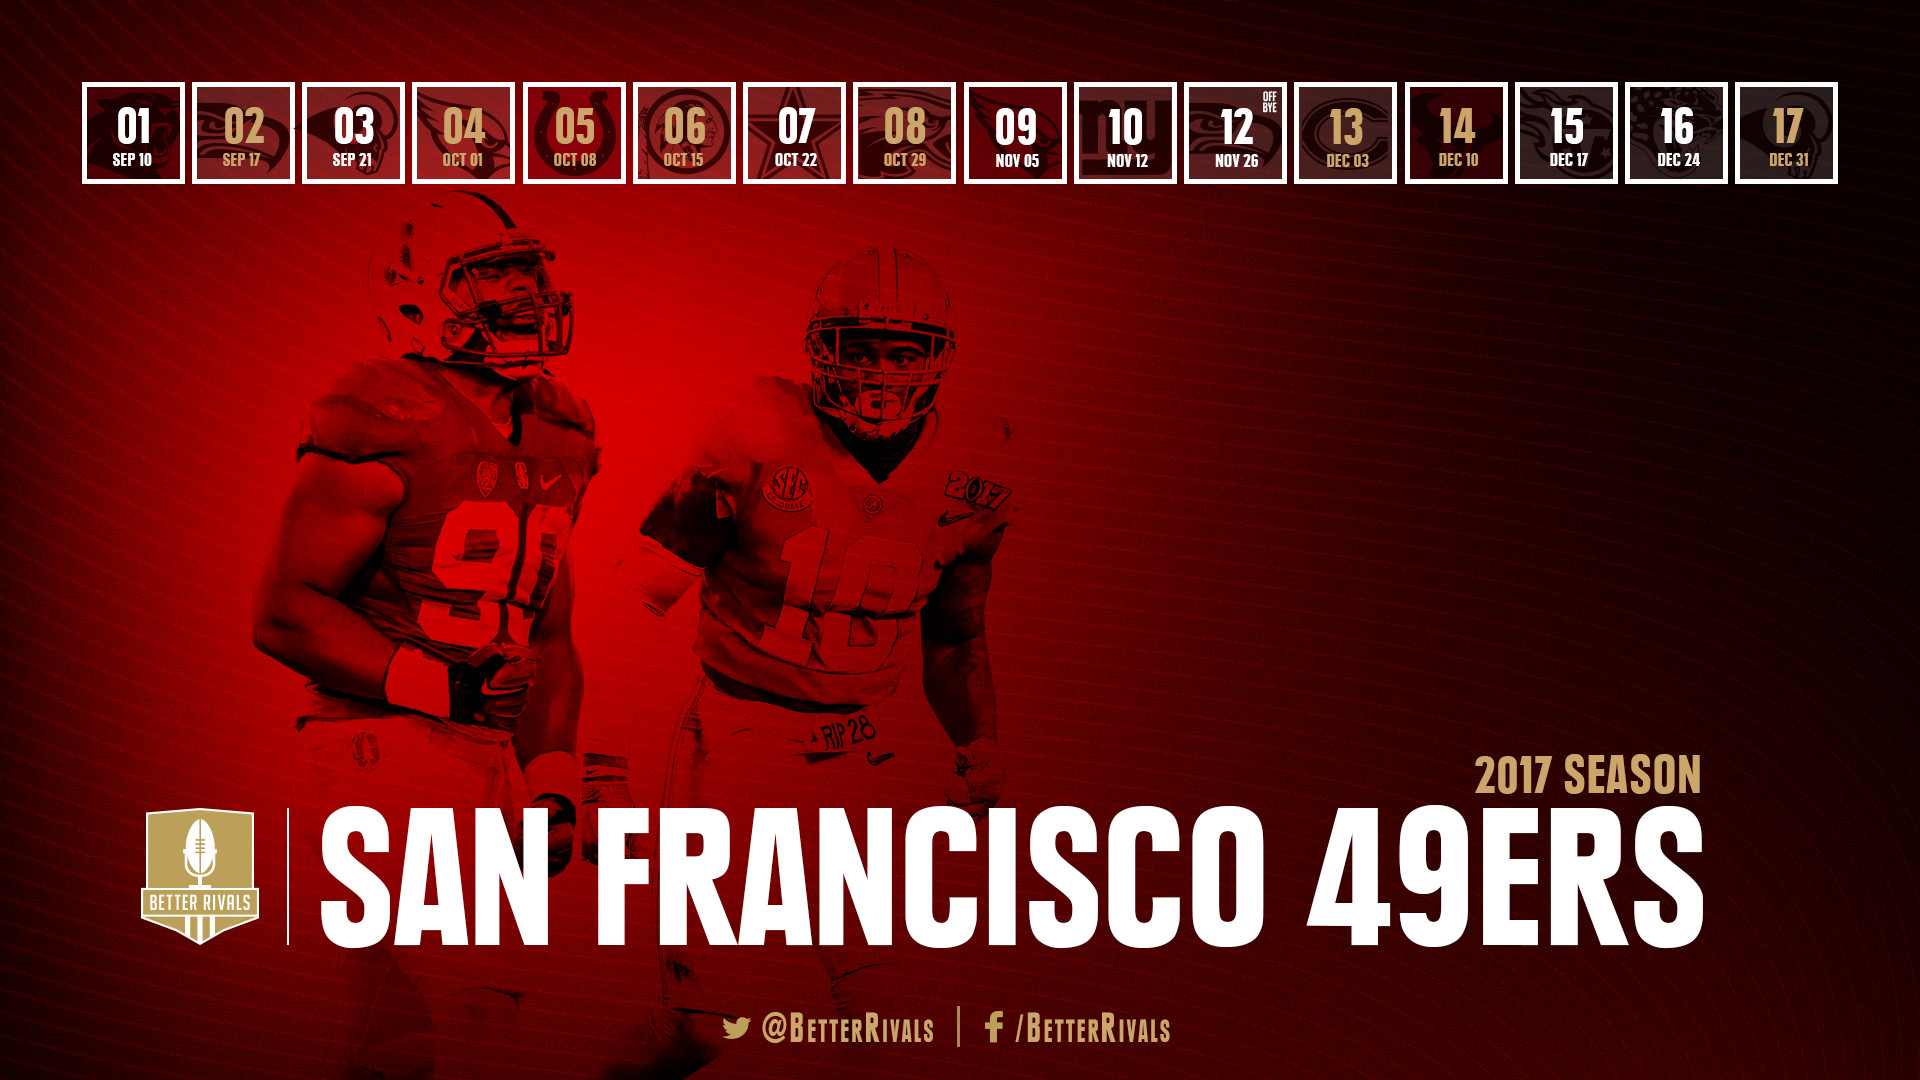 Get ready for the season by downloading the new 49ers schedule wallpapers  for your desktop or mobile.